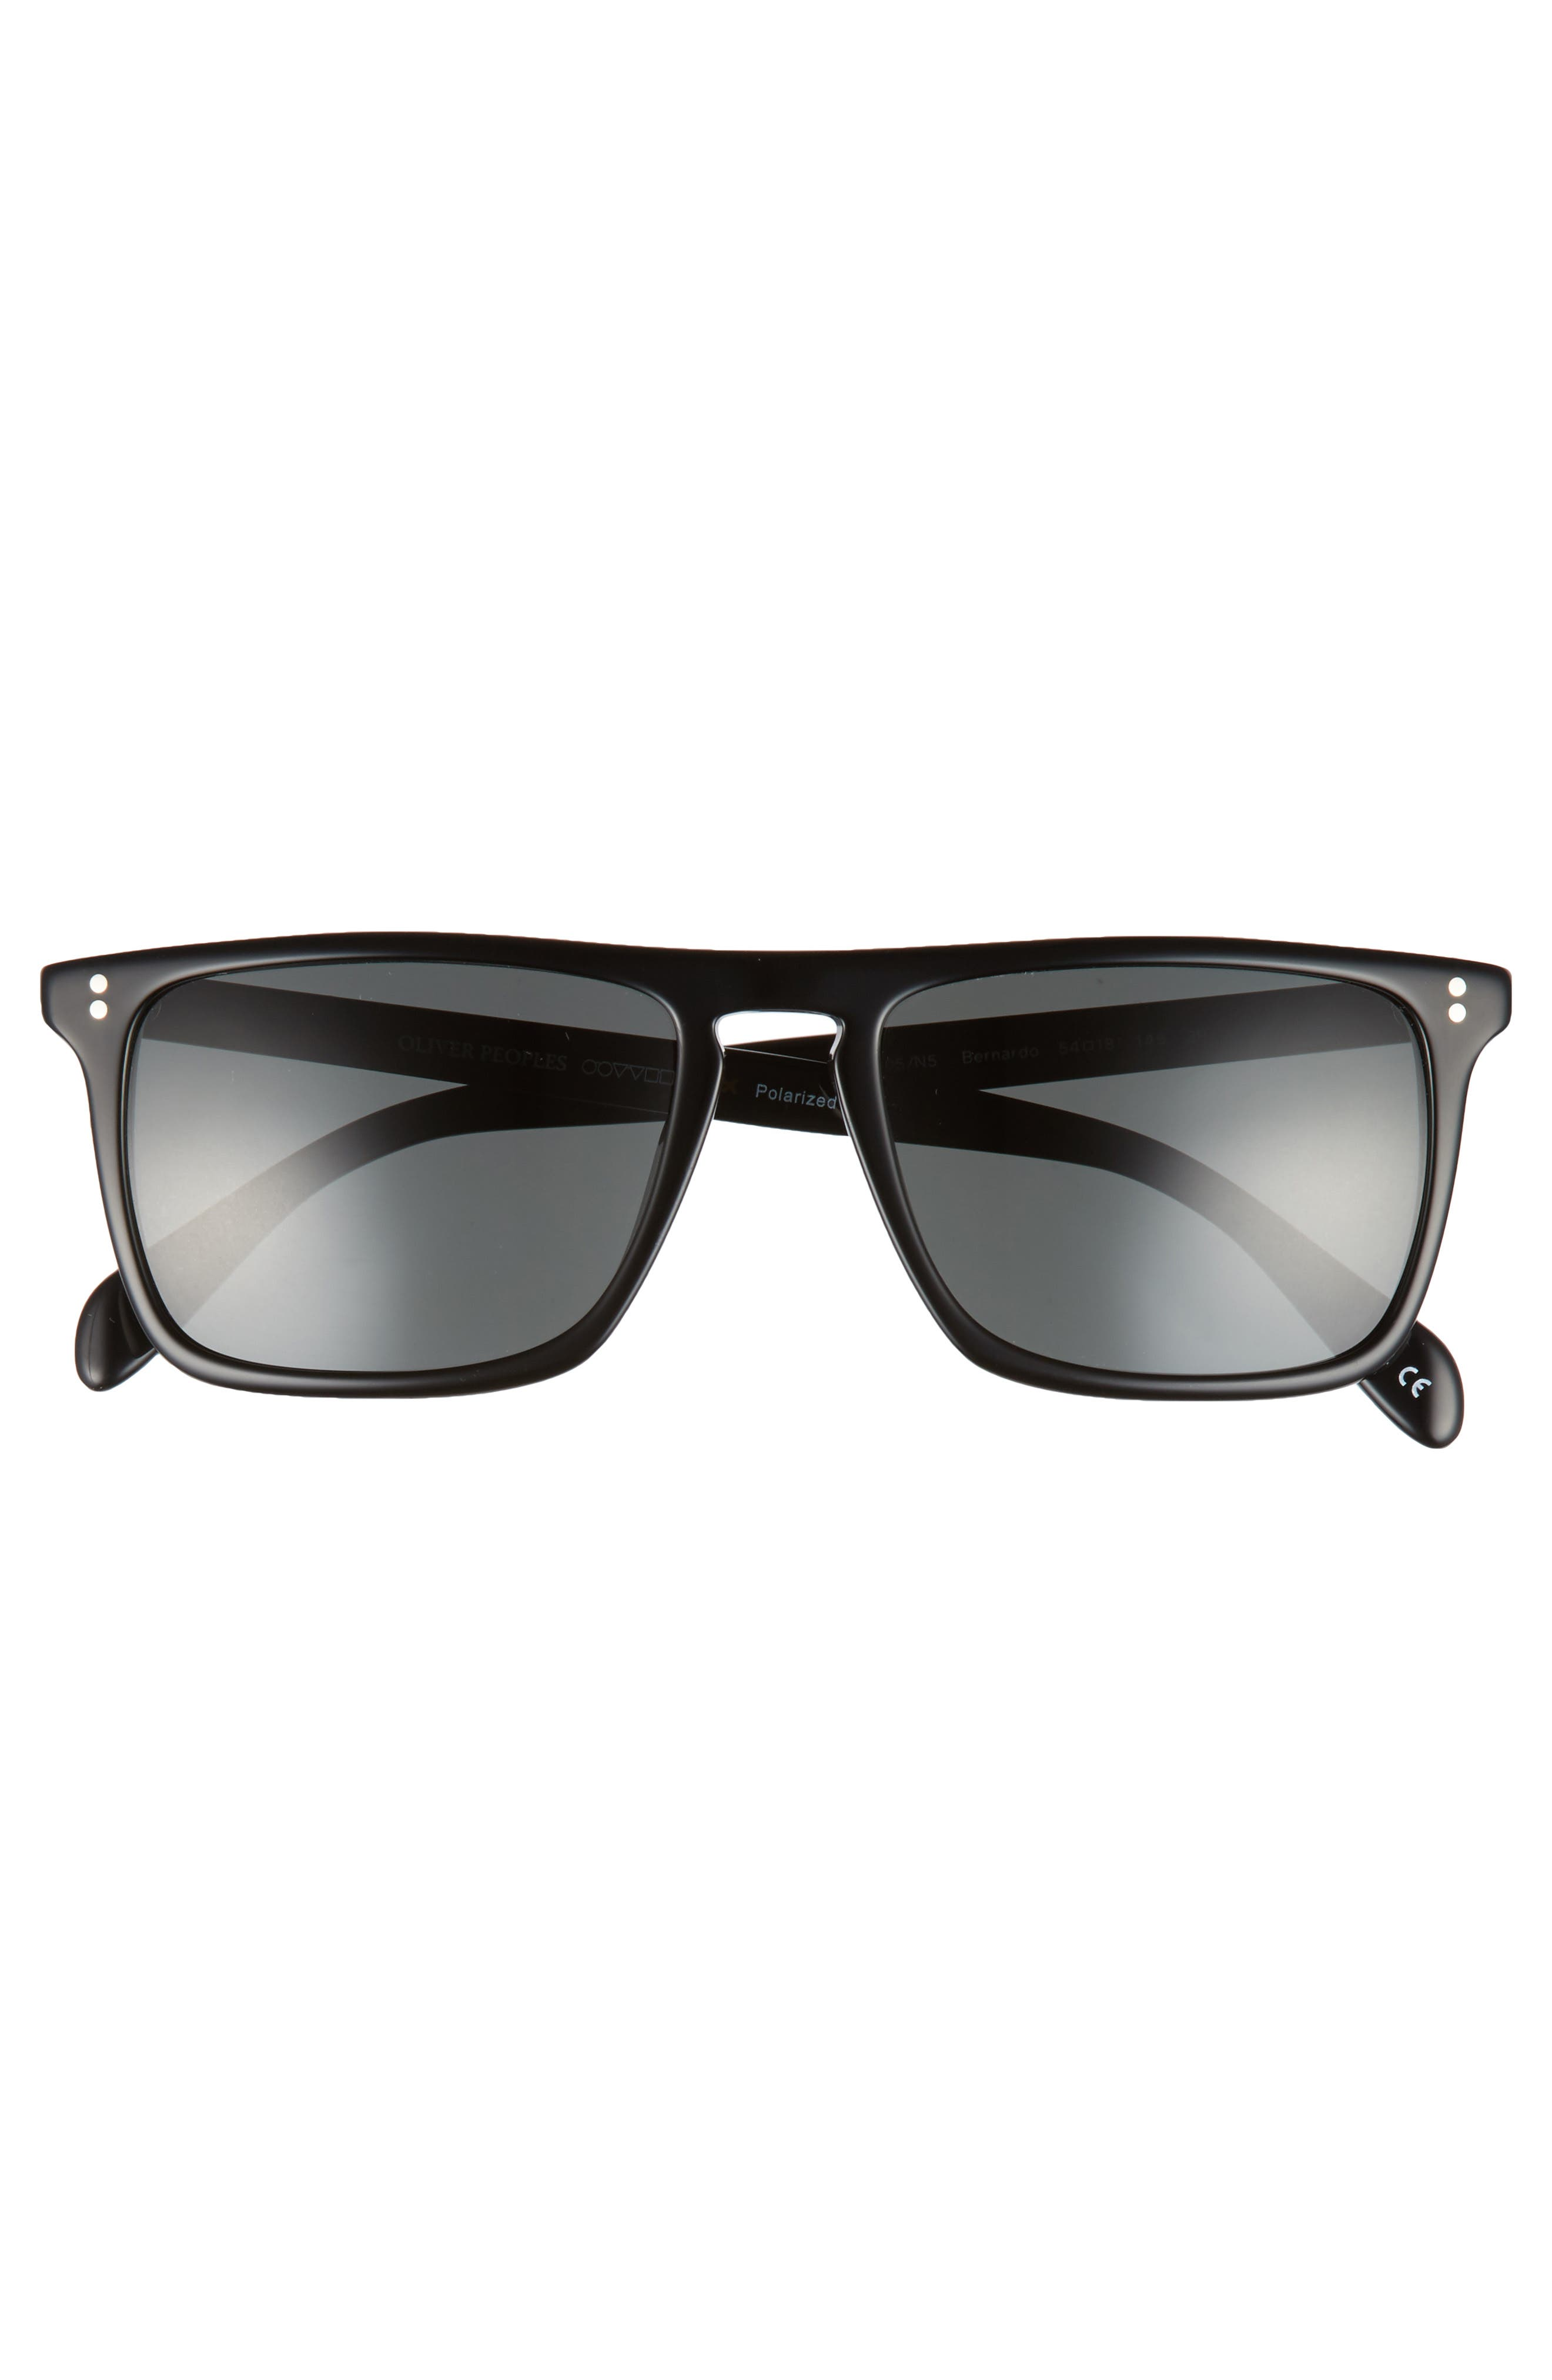 Bernardo 54mm Polarized Sunglasses,                             Alternate thumbnail 2, color,                             001